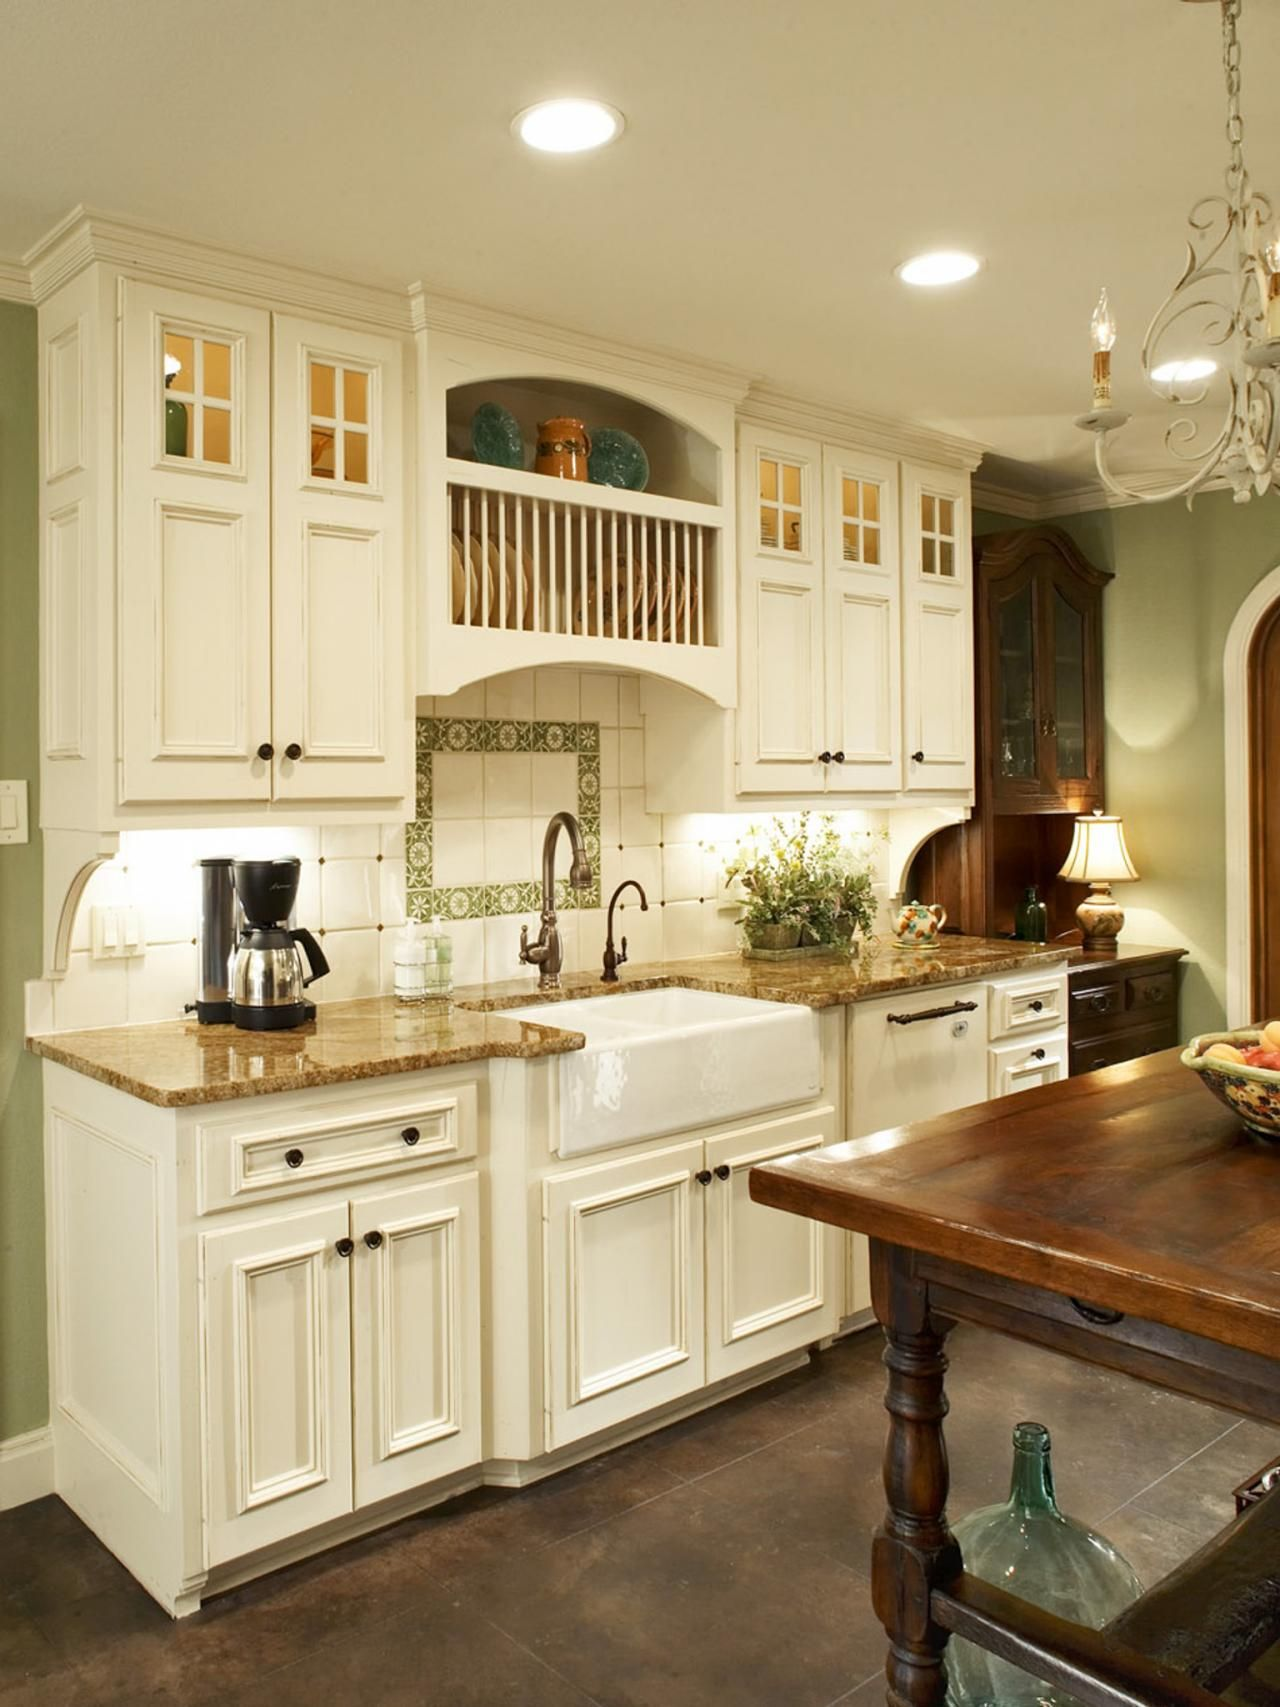 french country kitchen makeover cottage kitchen cabinets country kitchen cabinets country on kitchen interior french country id=89139